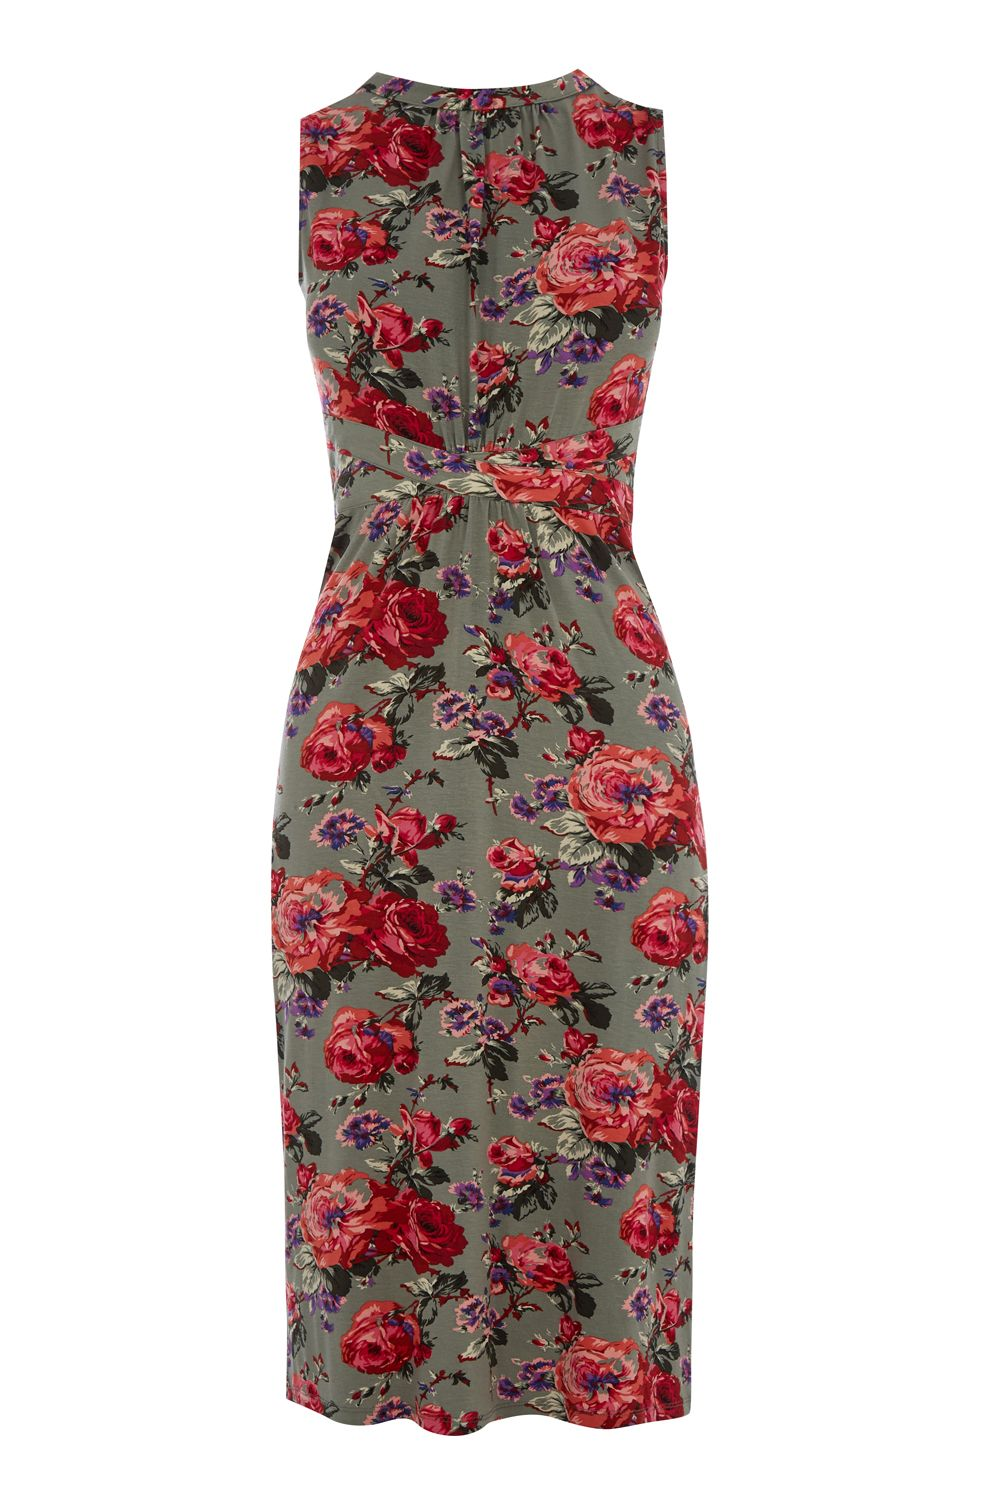 Oasis Rose Grecian Midi Dress, Multi-Coloured